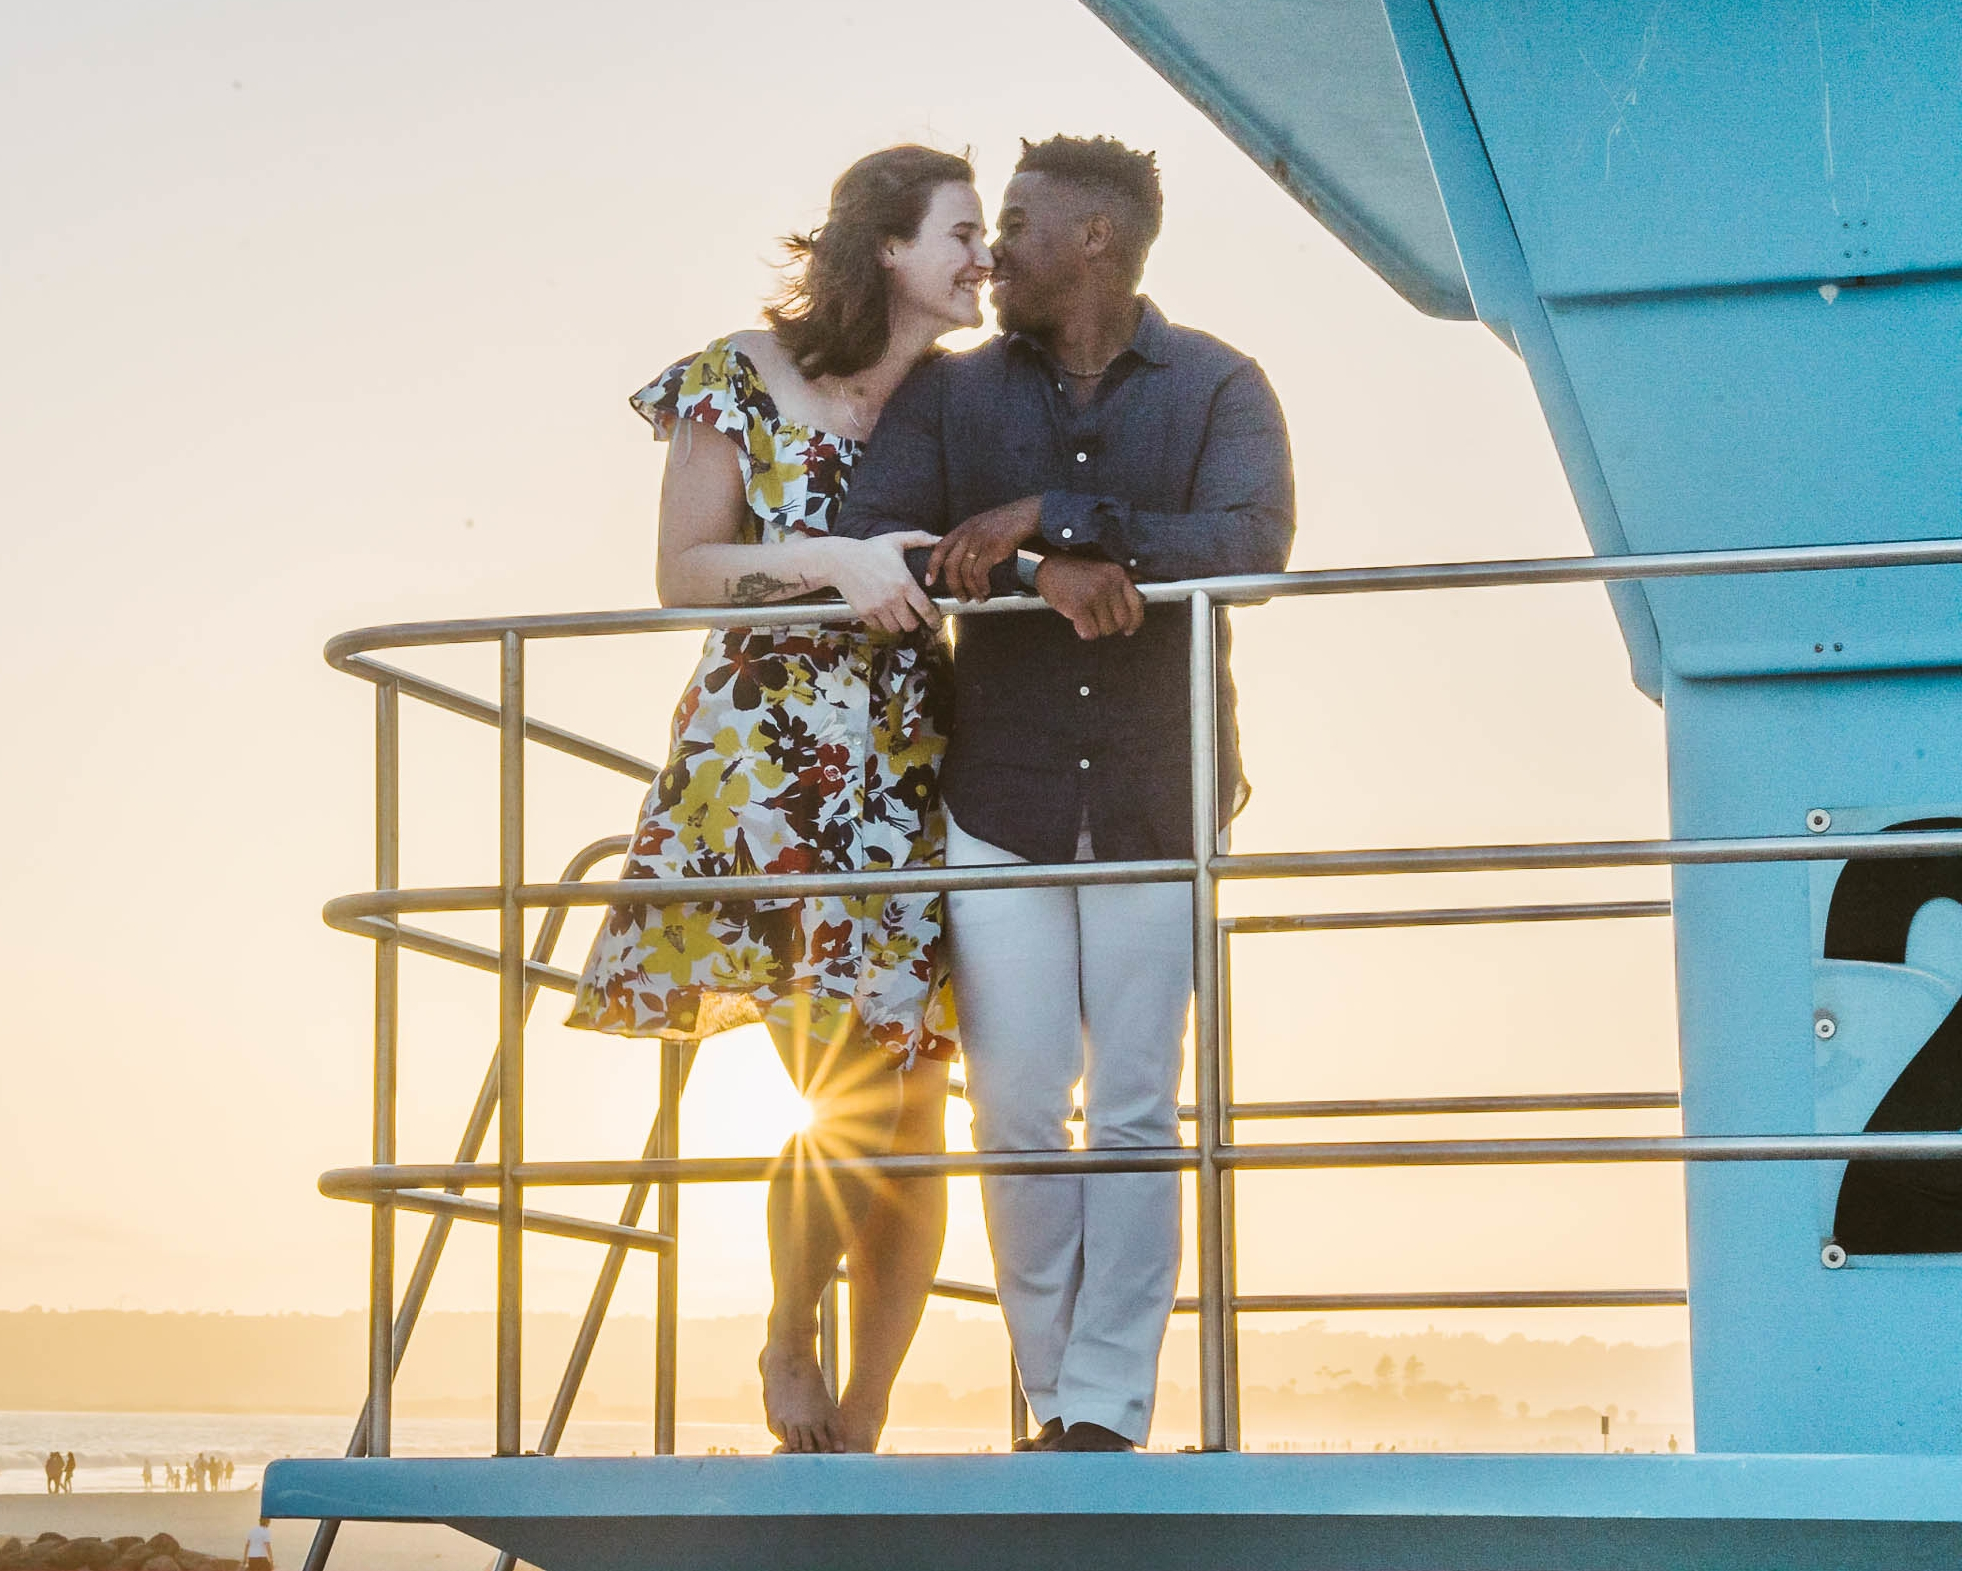 engagement session coronado lifeguard tower island sunset san diego california white girl yellow flowers blue red dress african american interracial couple dusk